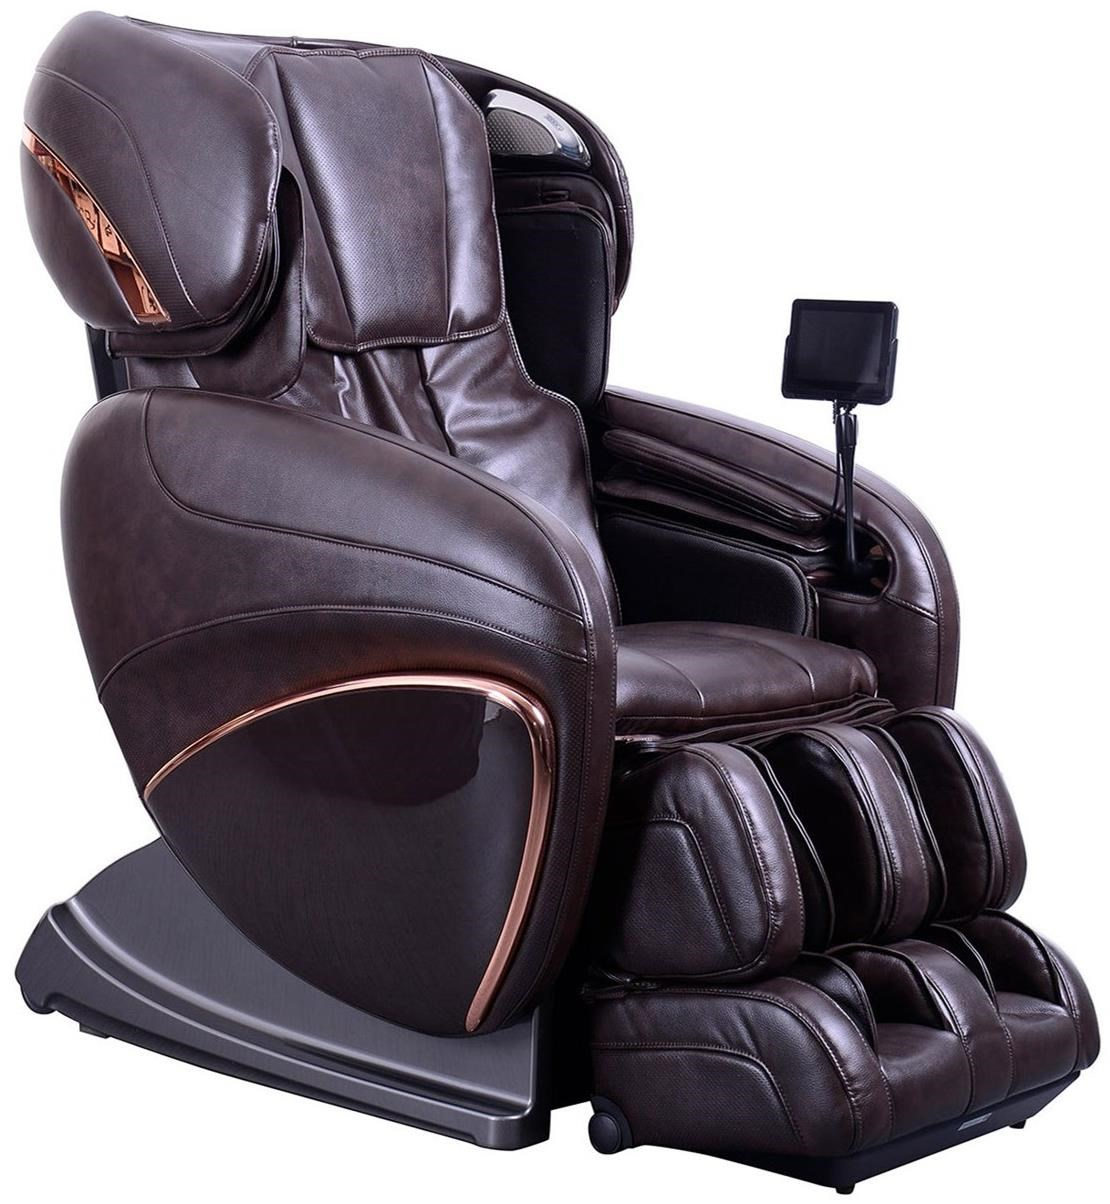 Cozzia Massage Chairs Cozzia Cz Reclining Massage Chair With Advanced 3d Massage